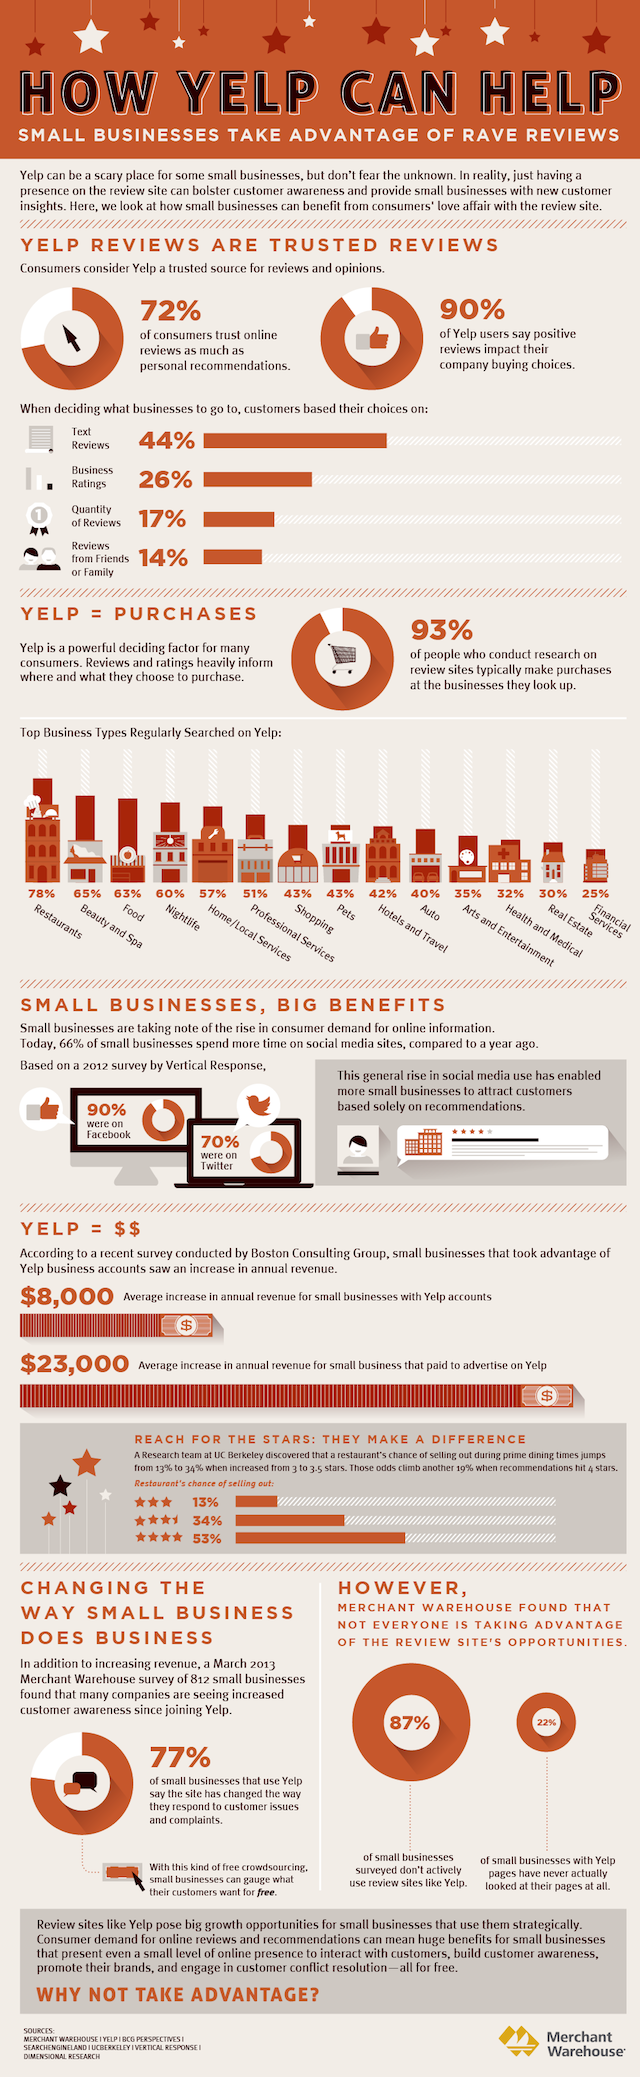 yelp-small-business